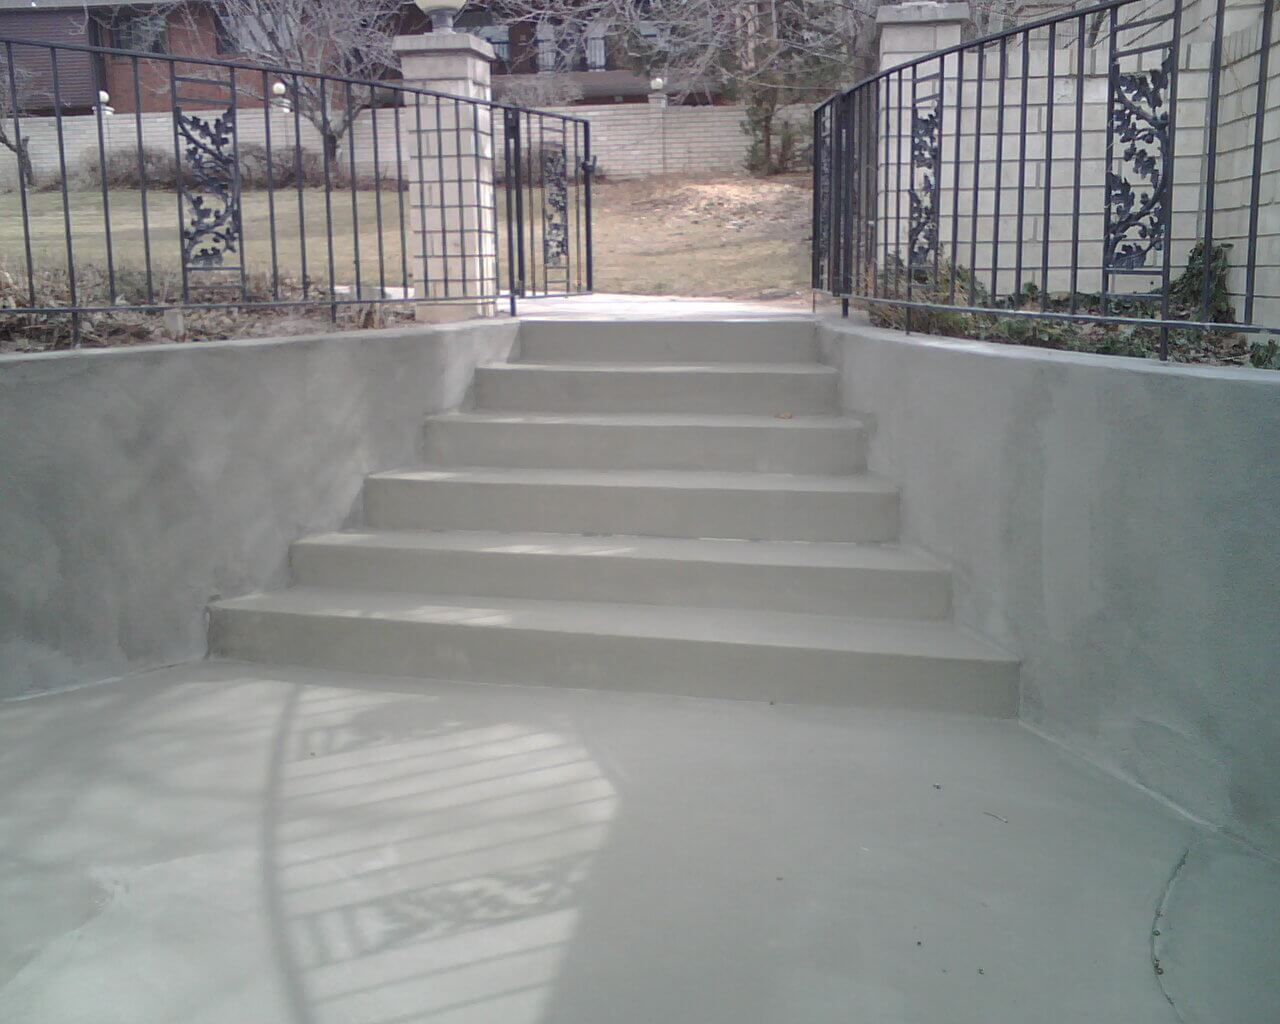 Standard Gray Overlay On Stairs Retaining Walls Concrete